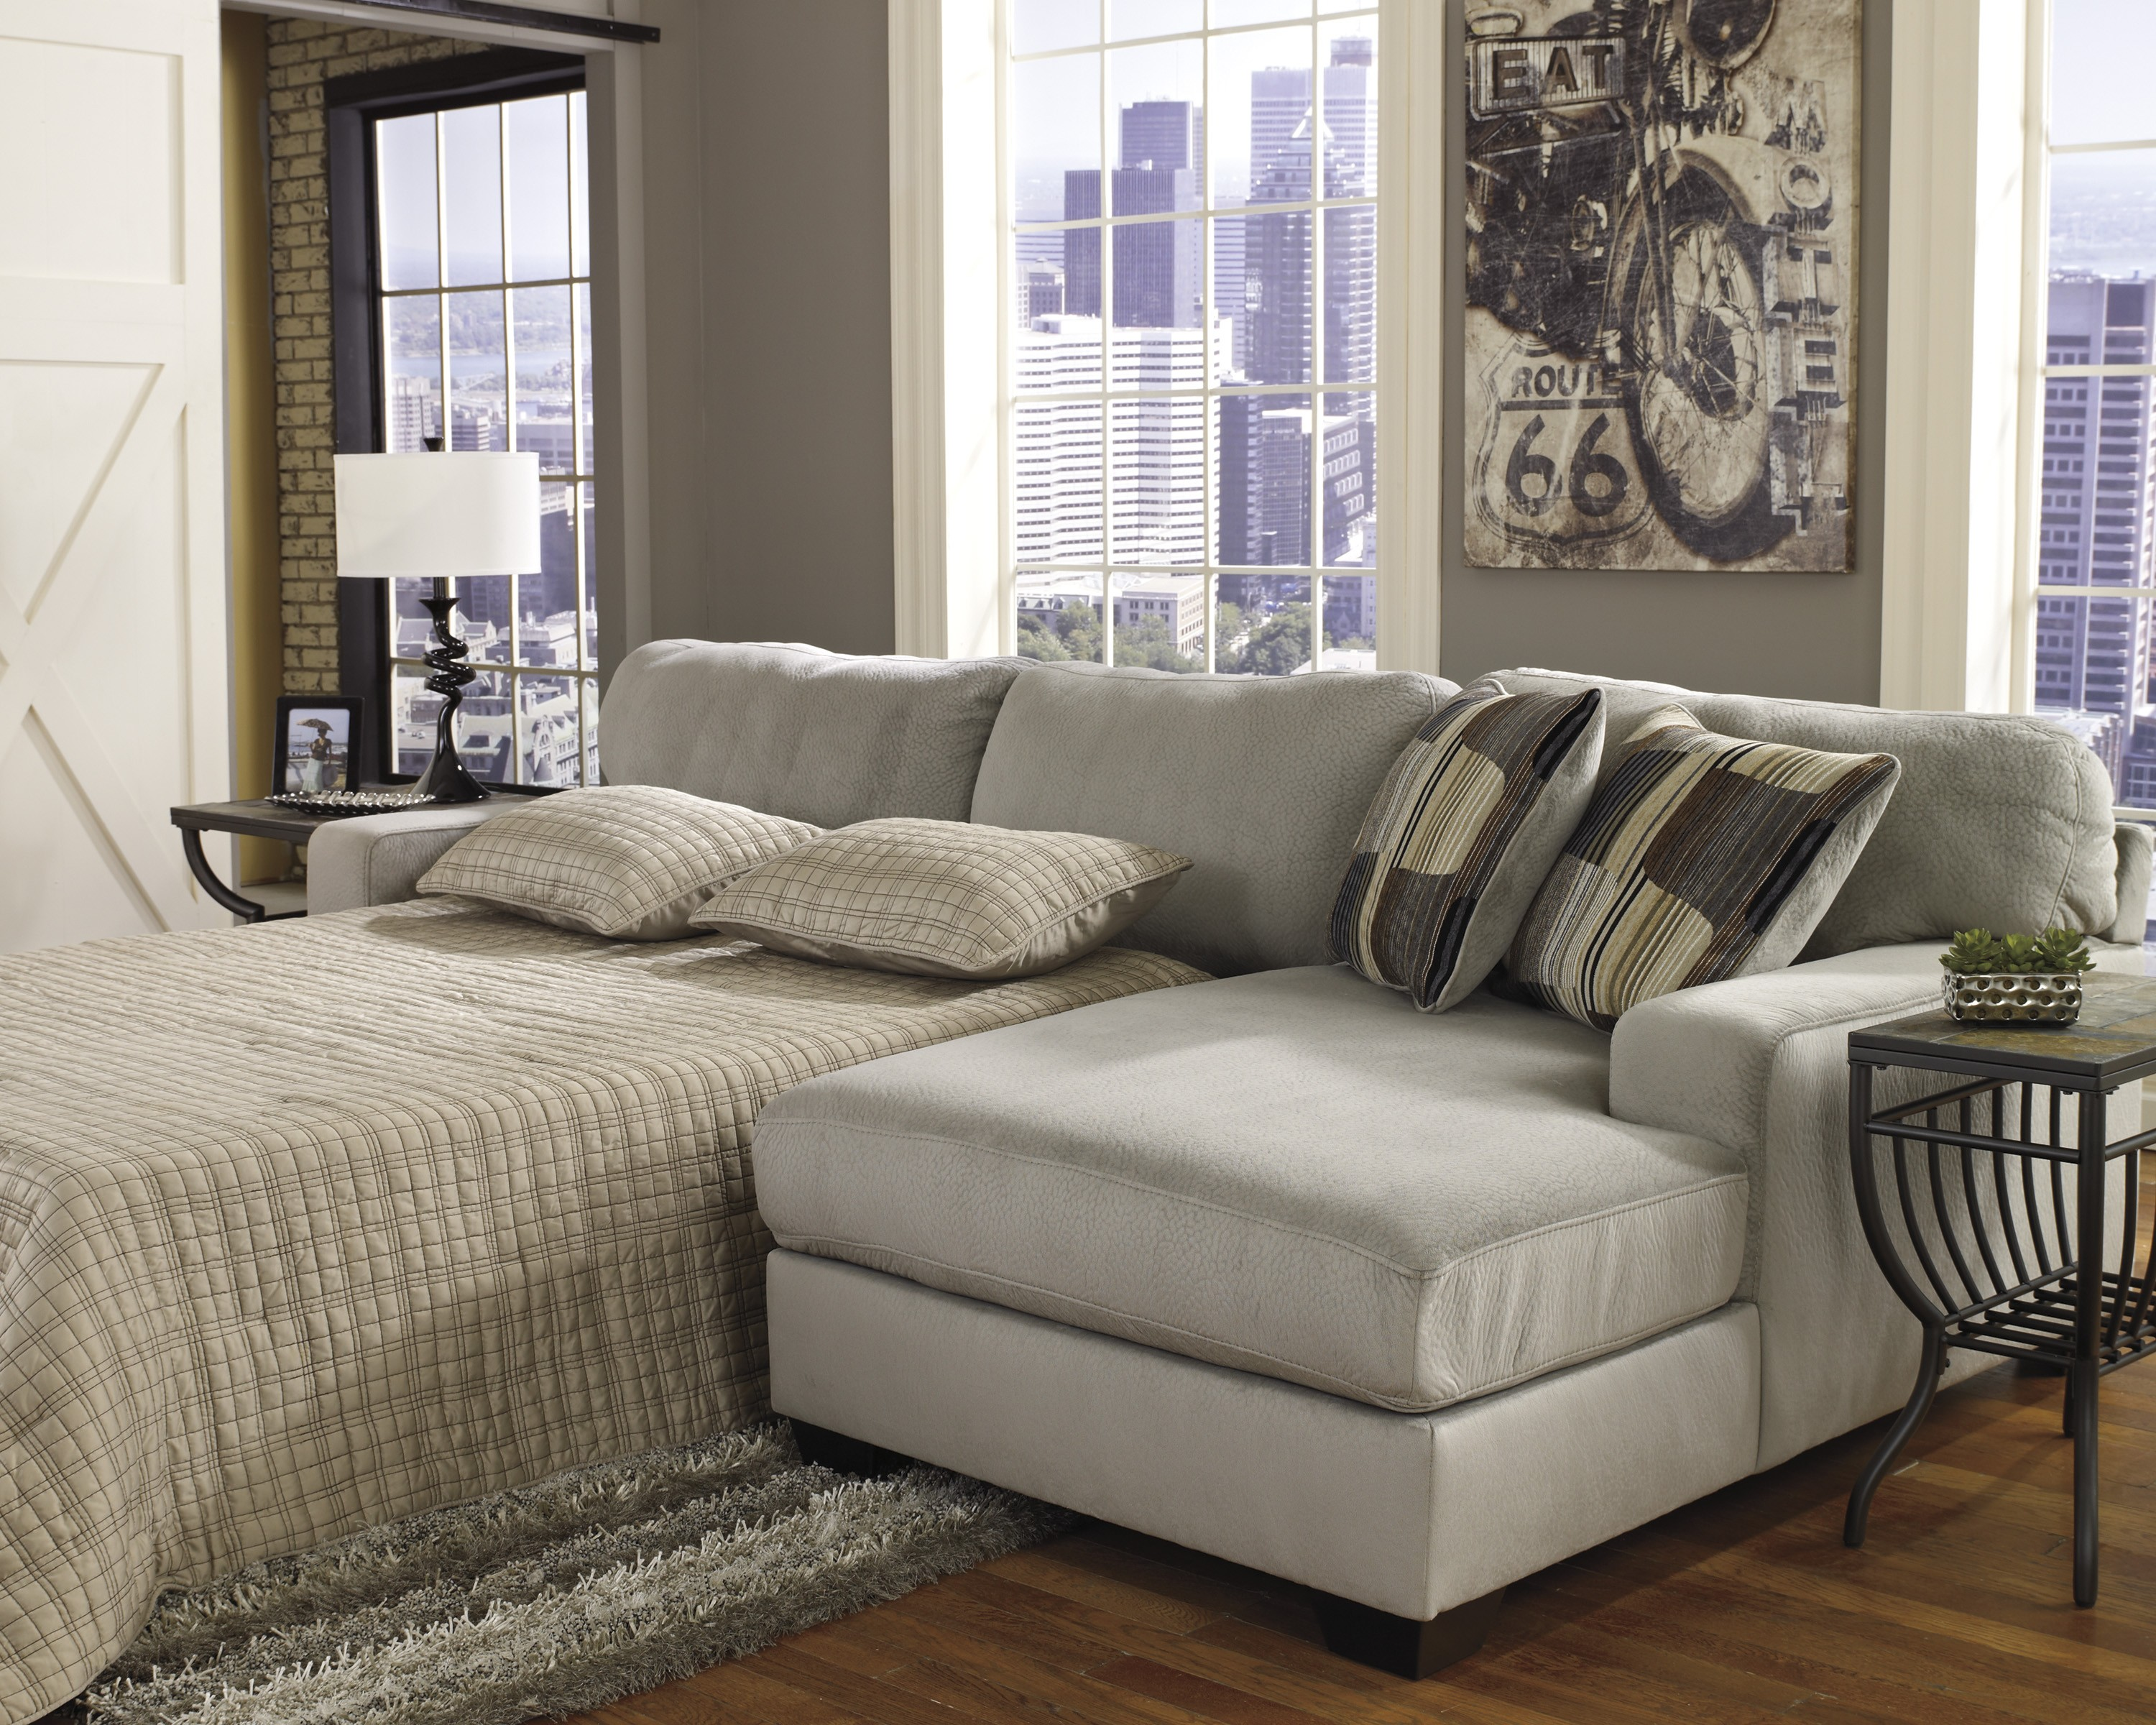 sectional sleeper sofa in grey on wooden floor plus carpet matched with grey wall for living : sleeper sofa with storage chaise - Sectionals, Sofas & Couches